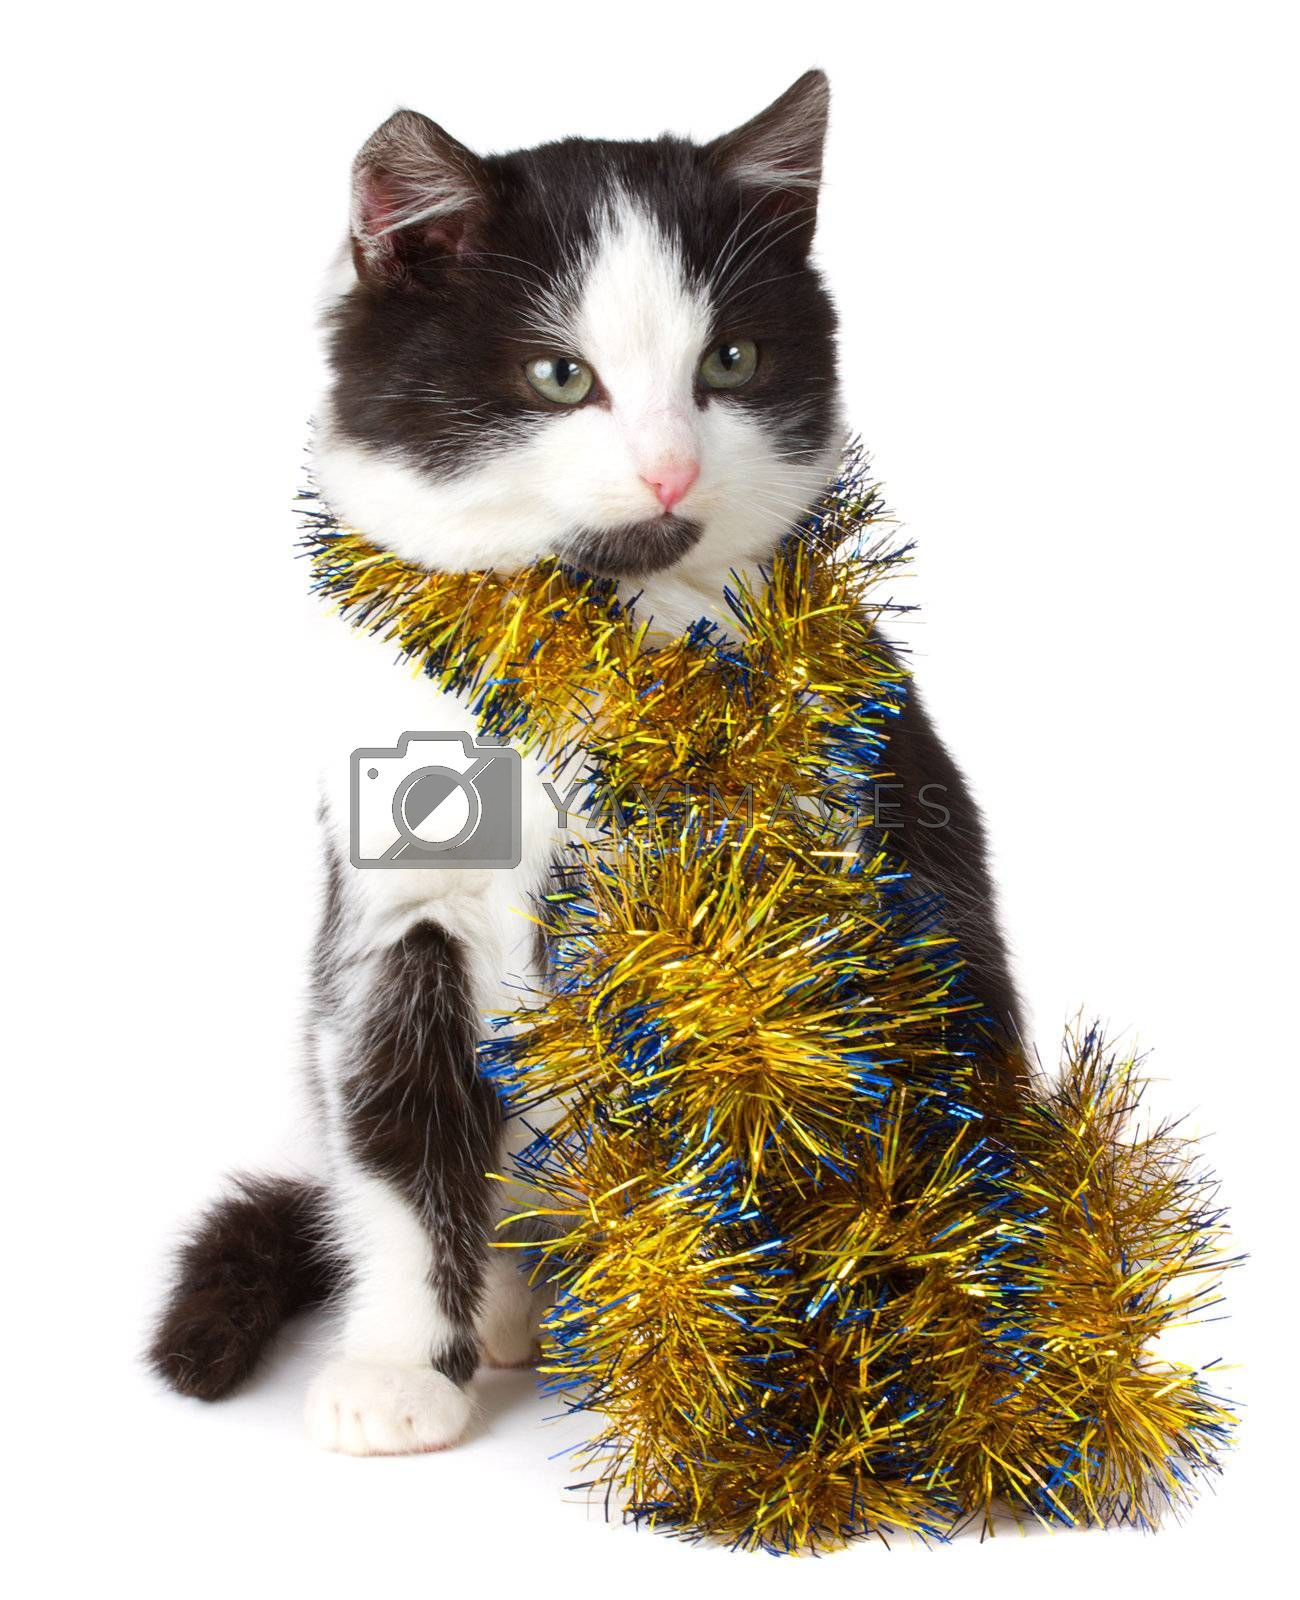 close-up kitten and christmas decorations, isolated on white